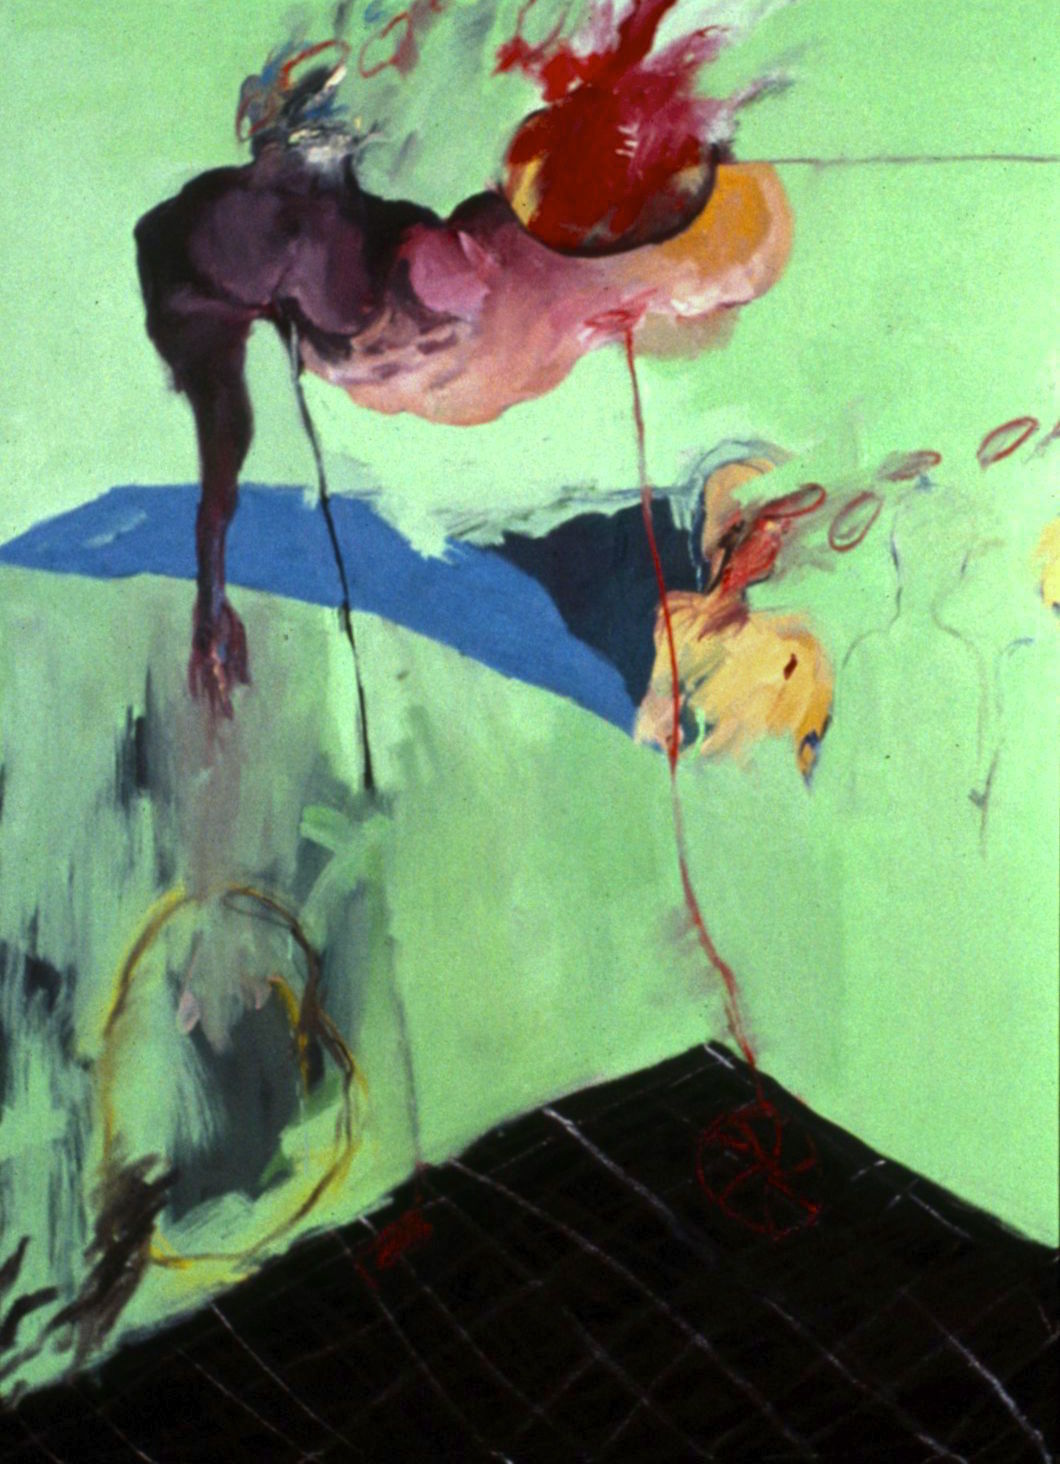 Triptych of '97 (left panel) Three figures in a hospital